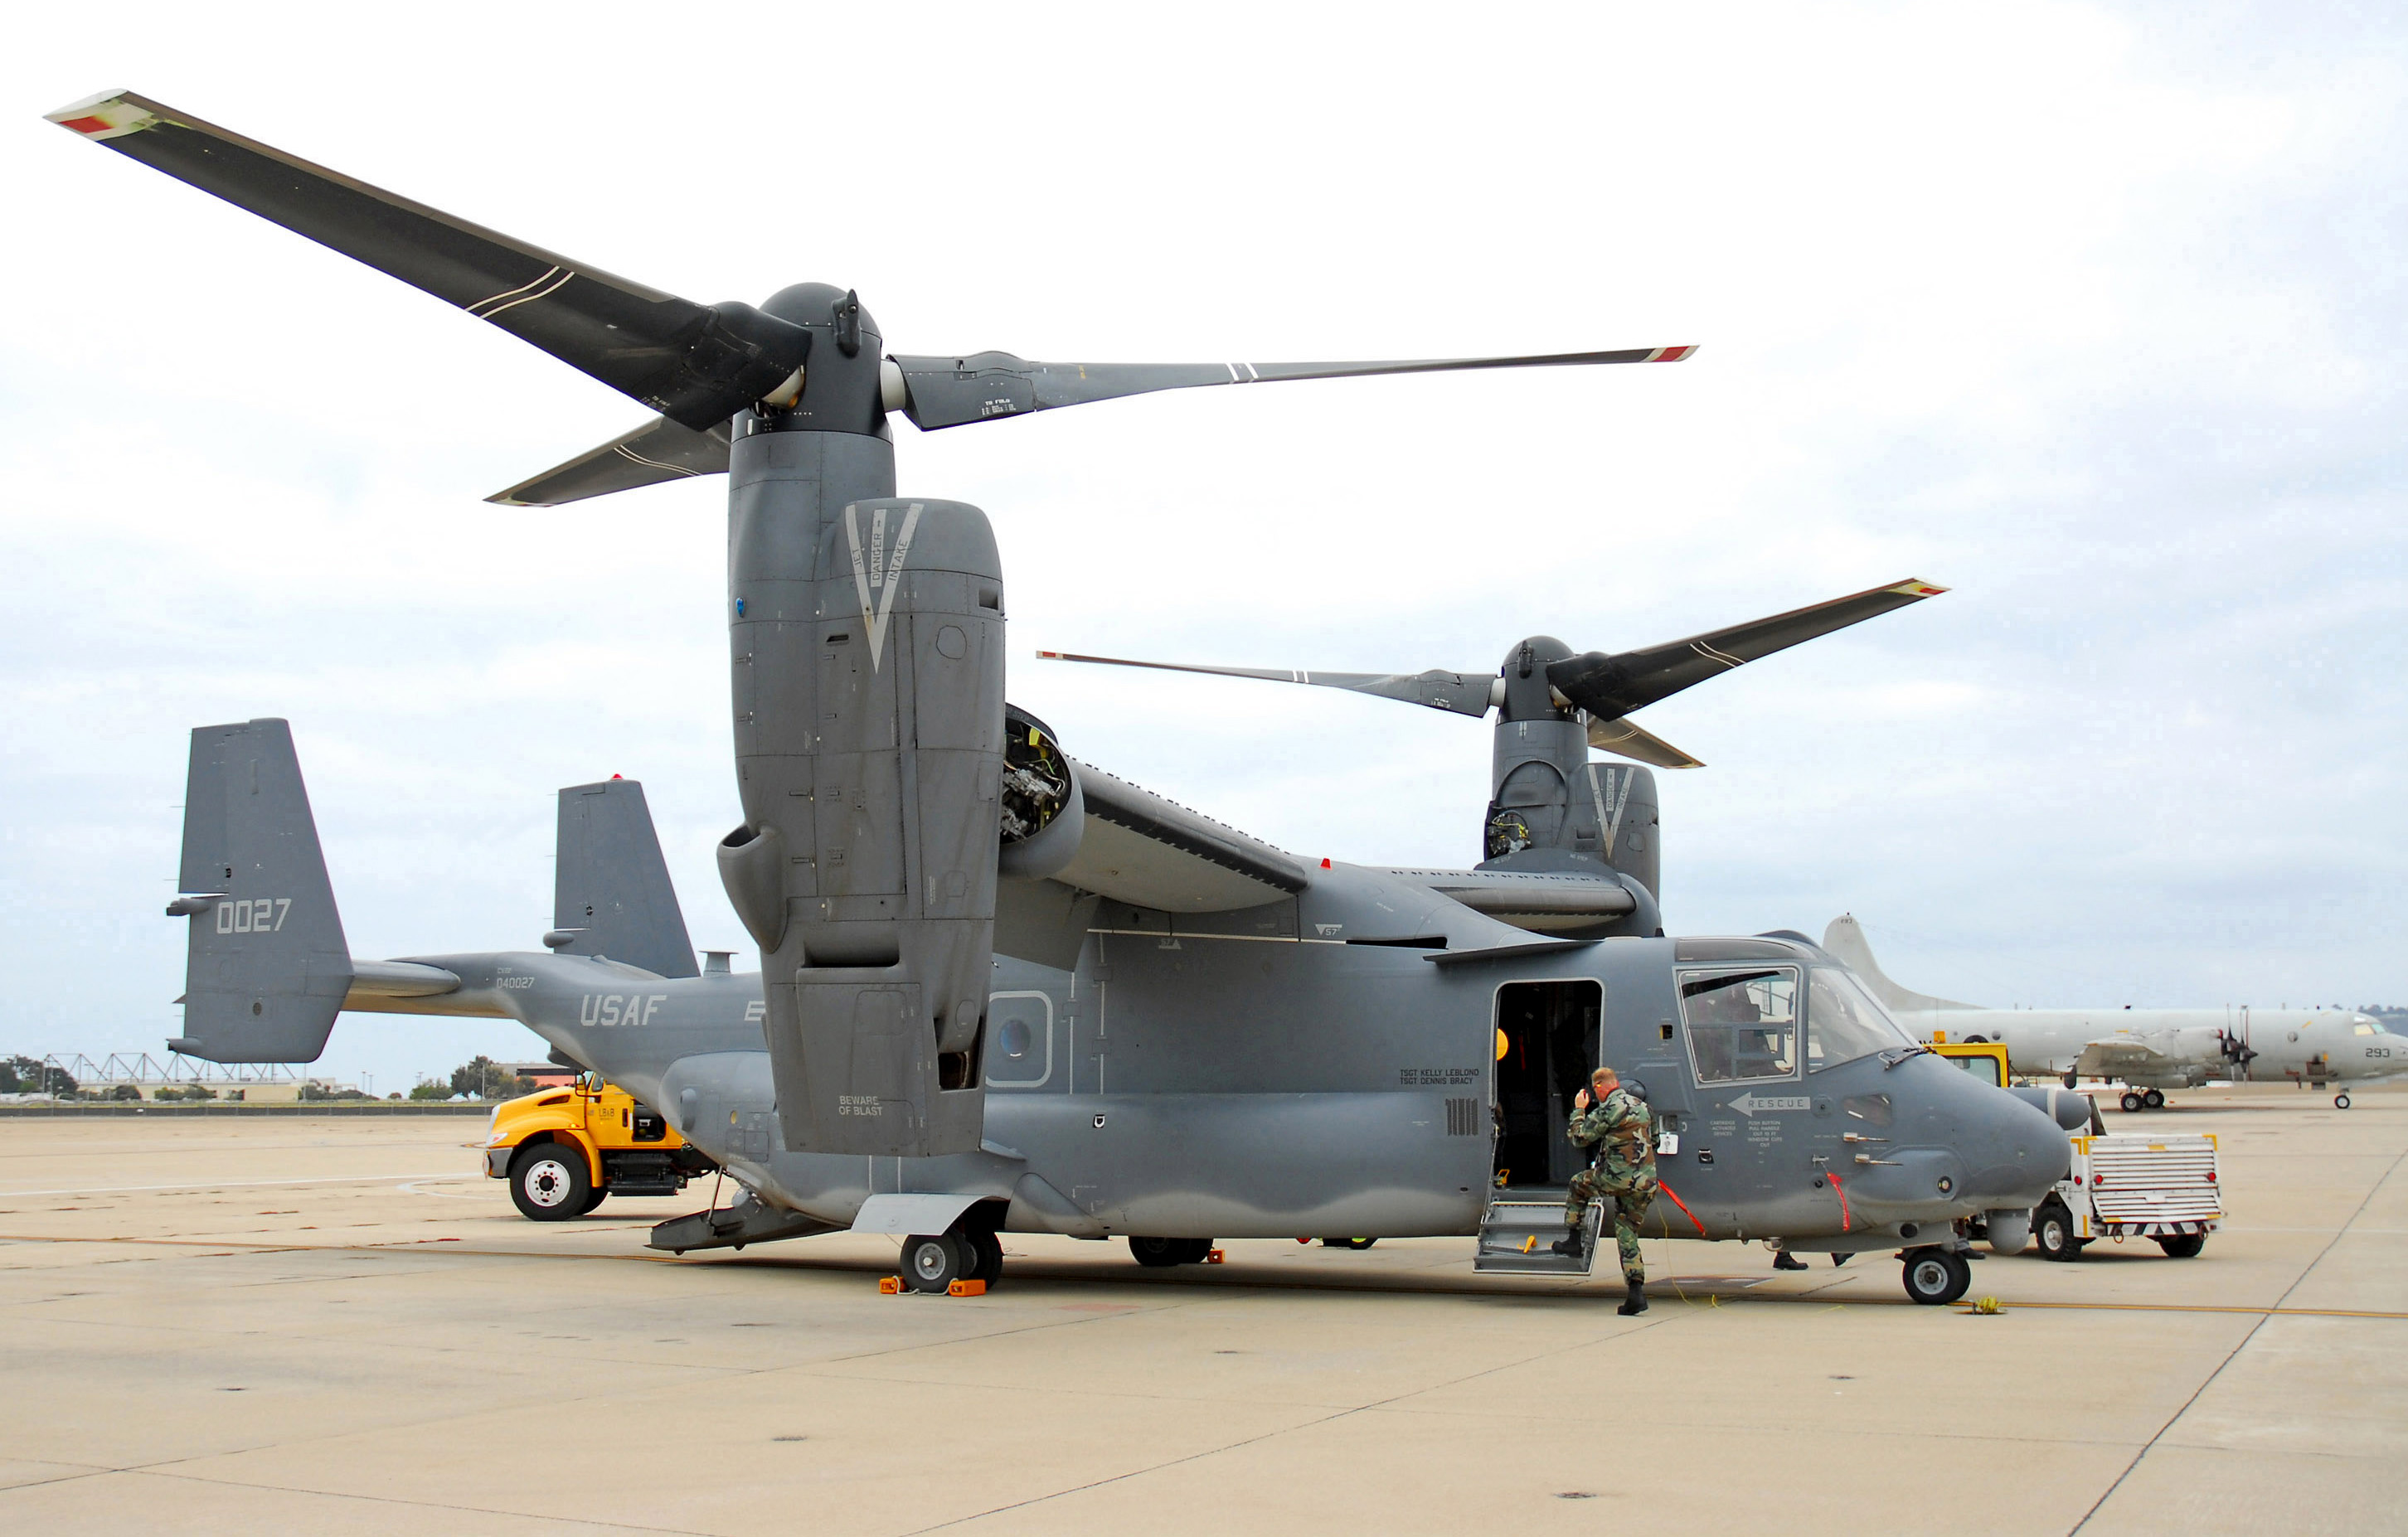 Airmen prepare a CV-22 Osprey Sept. 22 for an exhibition and training exercise with Navy Seals at Naval Air Base North Island, San Diego, Calif. (U.S. Navy photo/Mass Communication Specialist Seaman Daniel A. Barker)